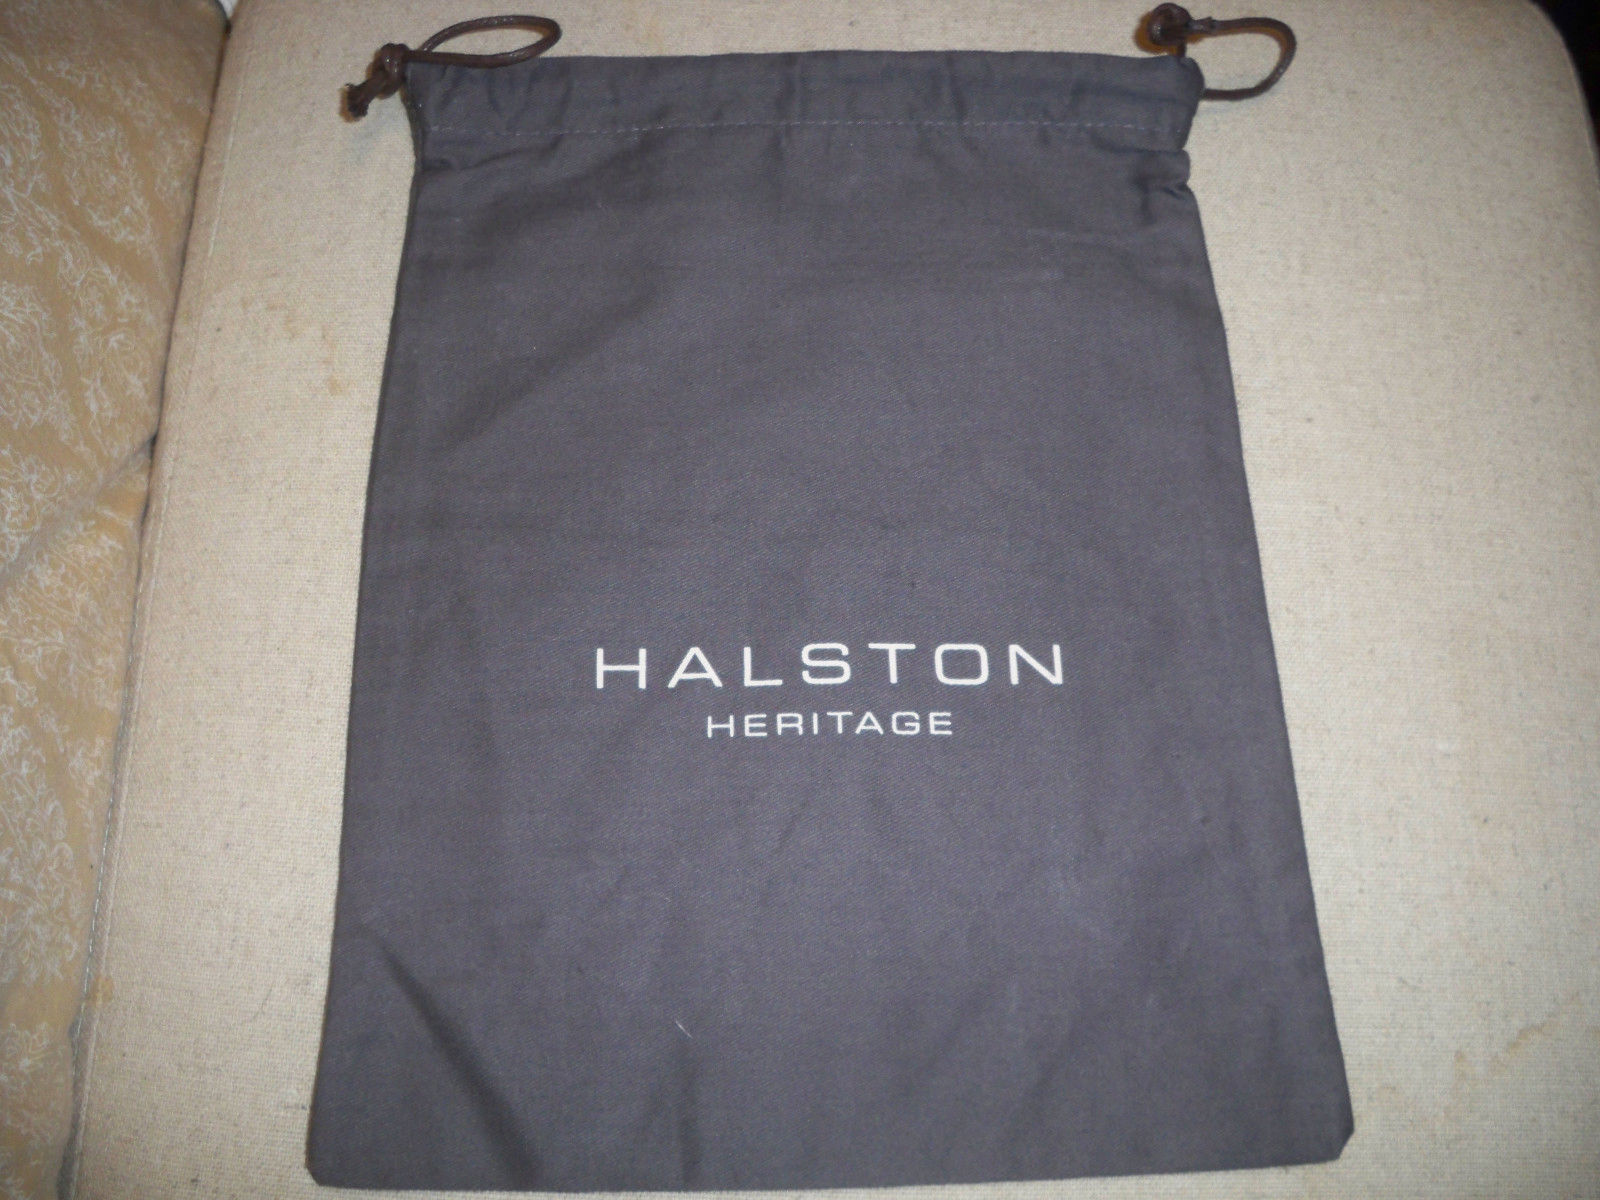 Primary image for HALSTON HERITAGE NEW DUST BAG  9x11 Draw string Bag